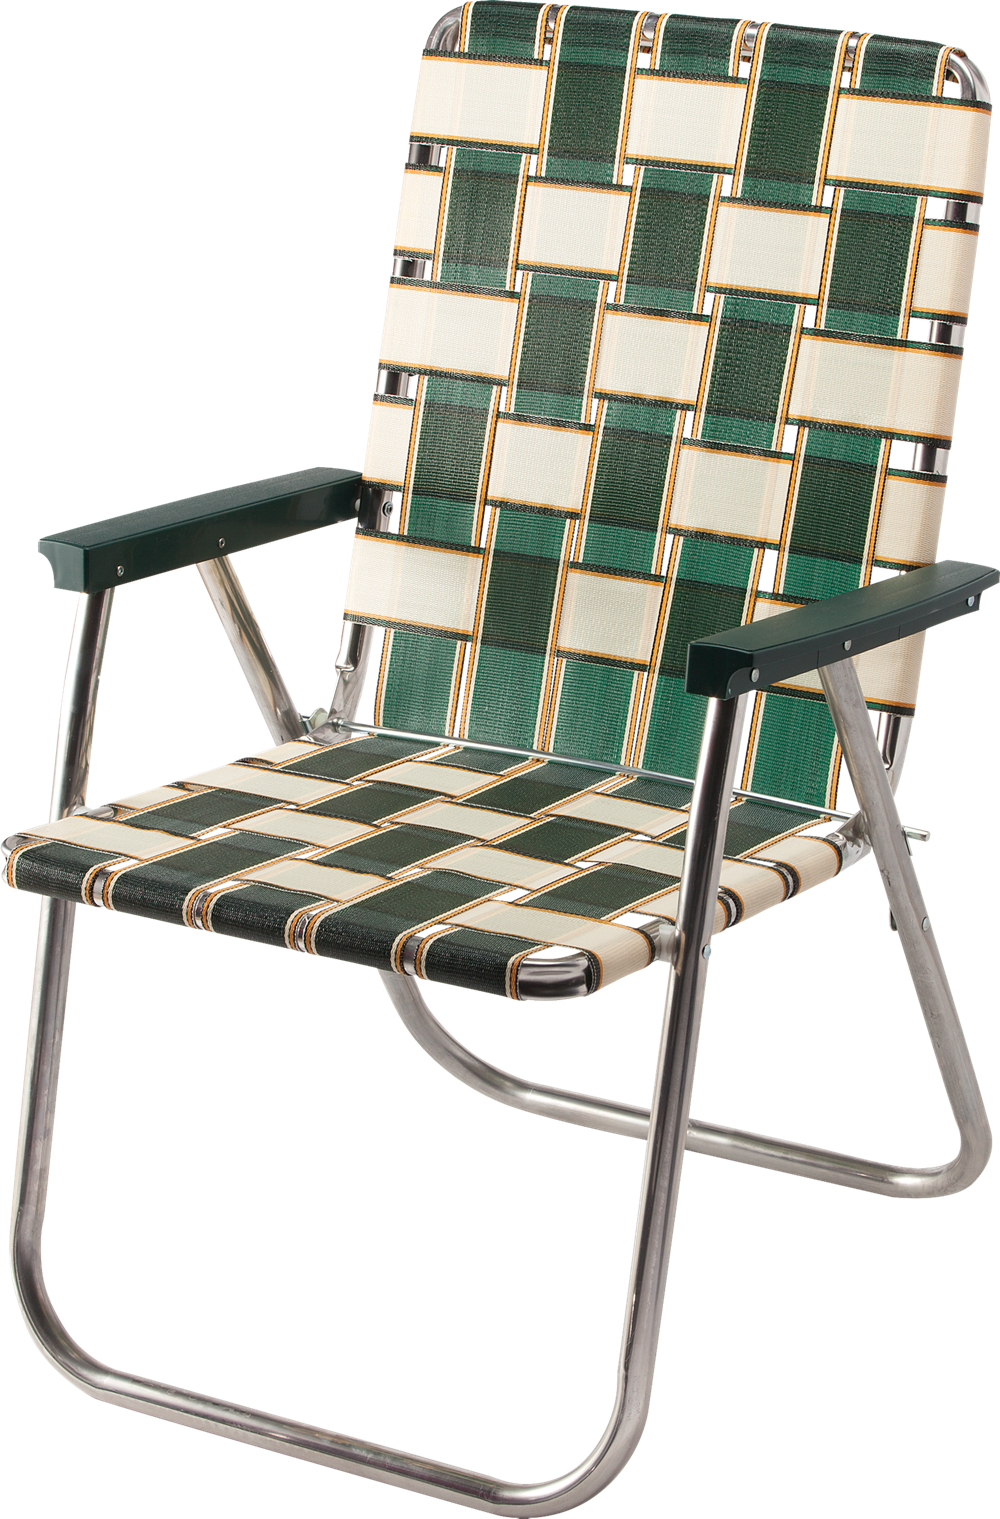 Amazon Com Lawn Chair Usa Webbing Chair Classic Charleston With Green Arms Kitchen Dining Lawn Chairs Chair Outdoor Chairs